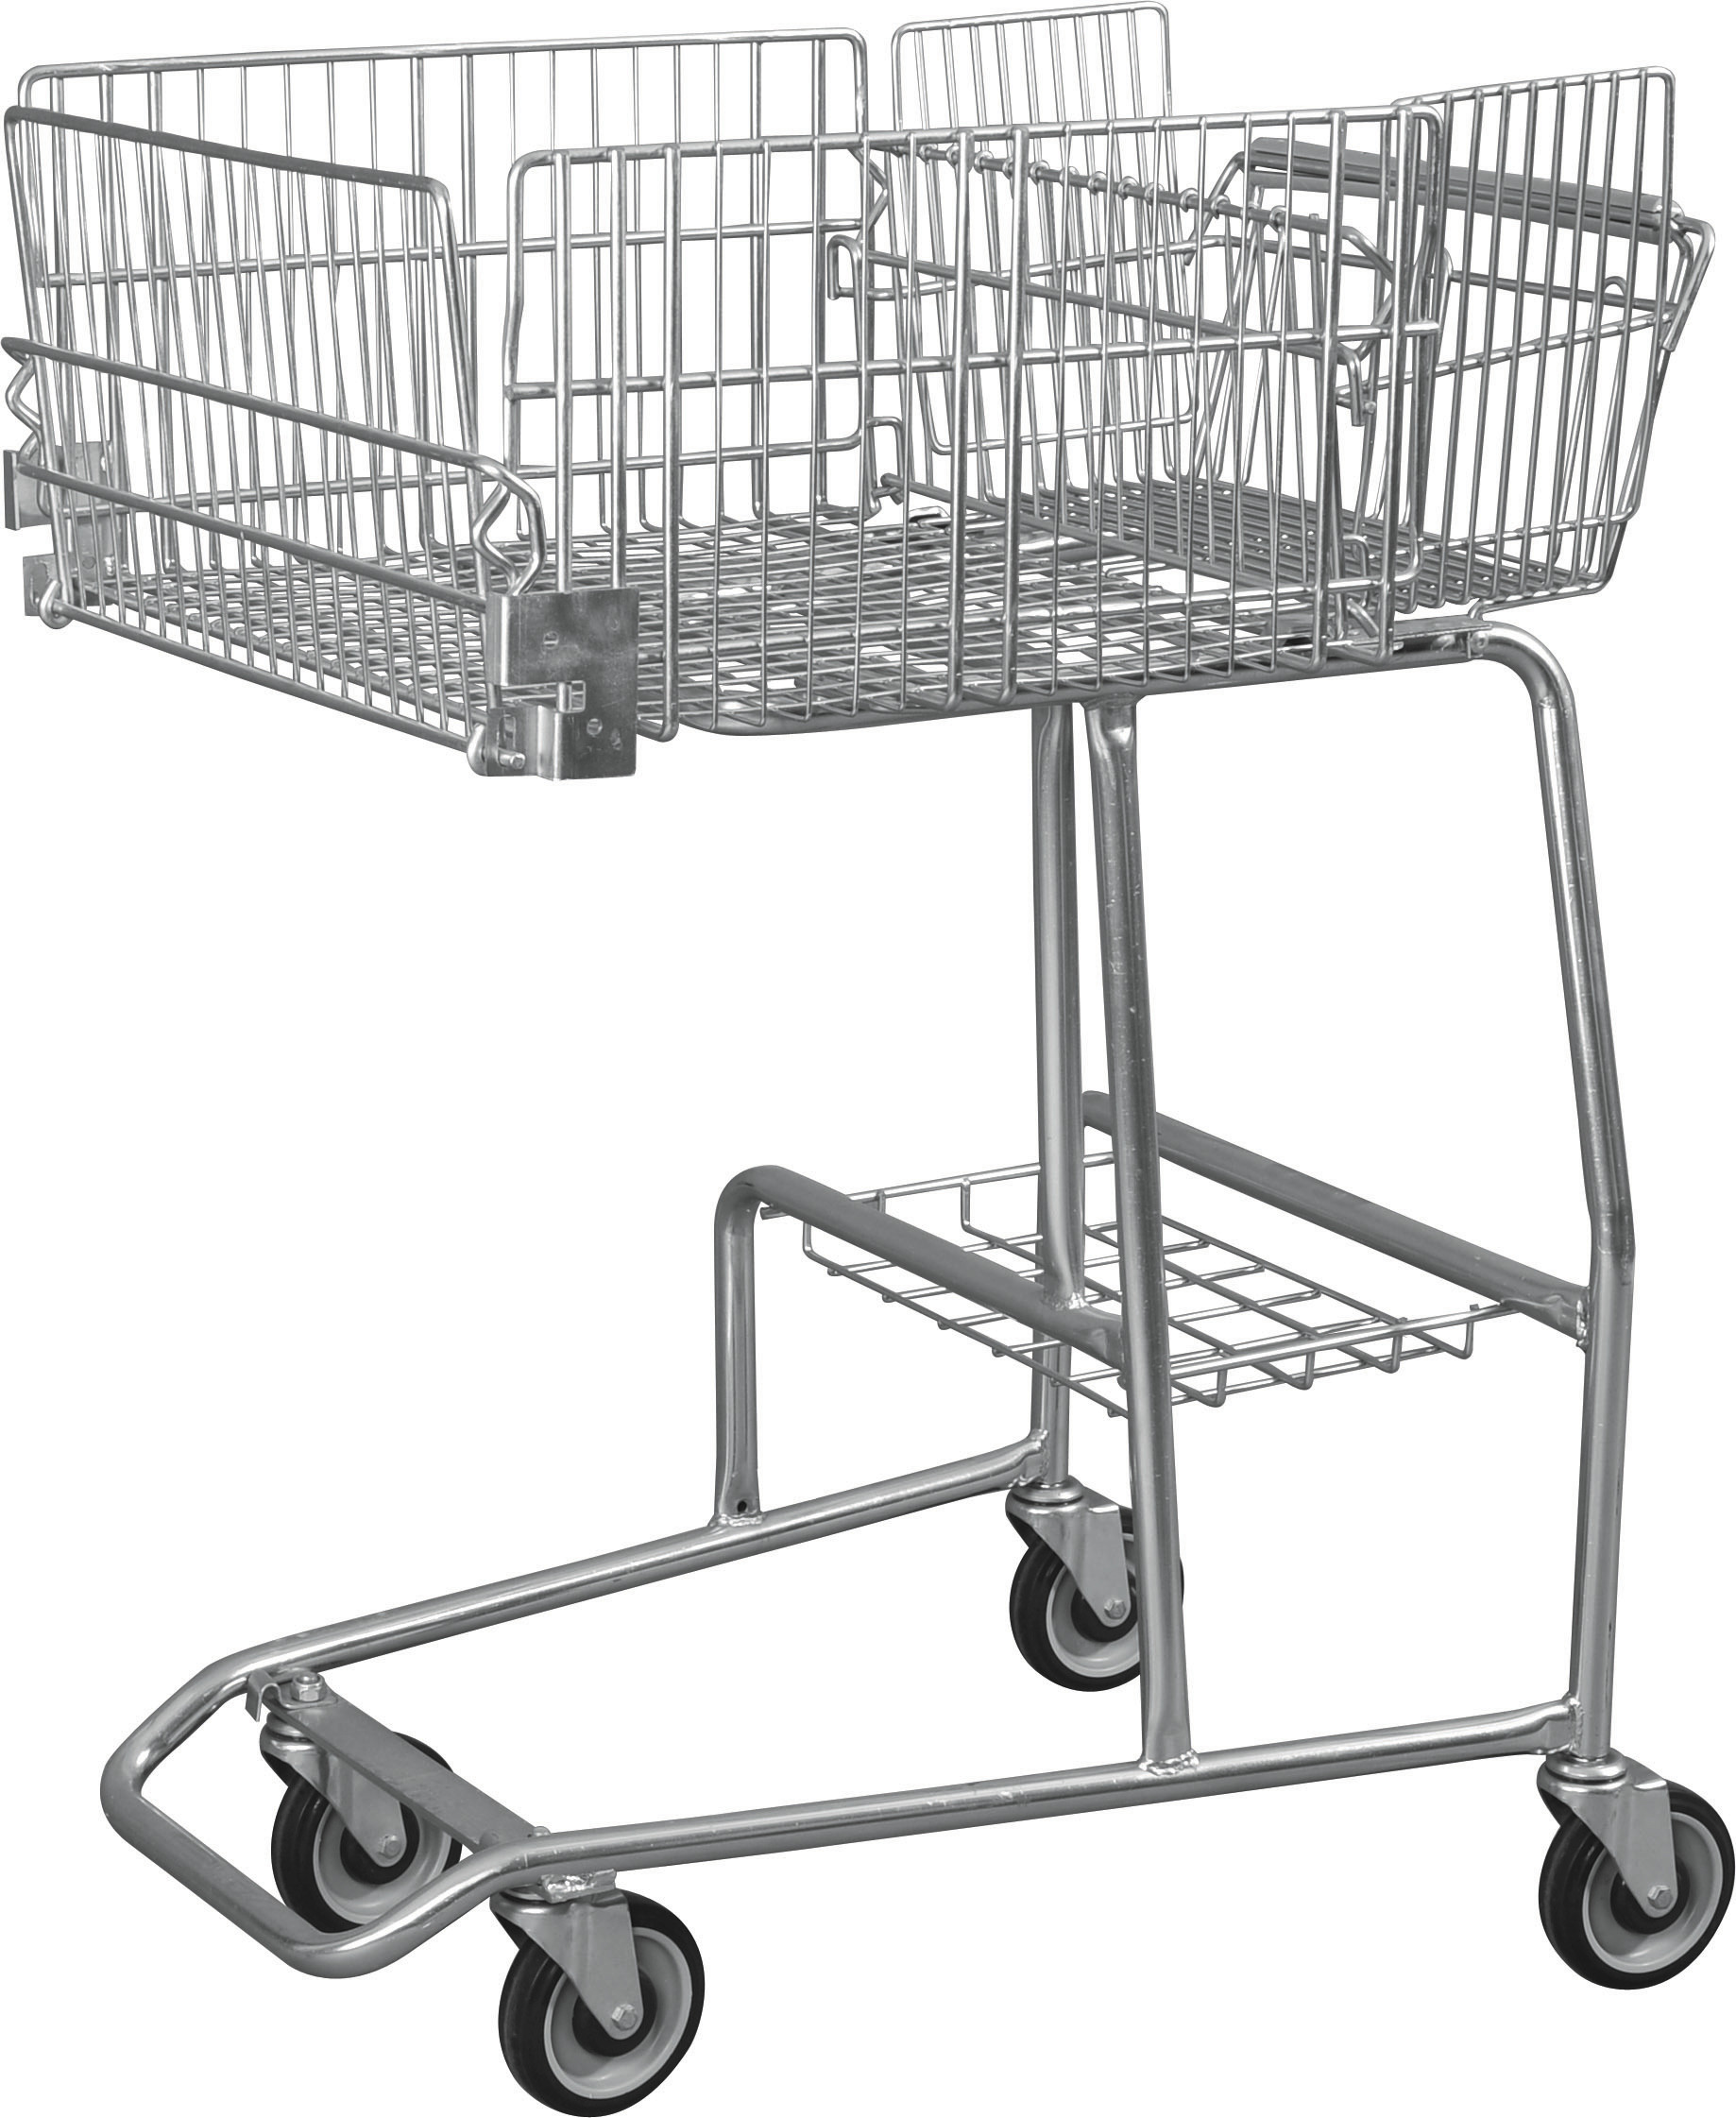 Low Carbon Steel Wire Basket Disabled Shopping Trolley For Old / Disability Persons